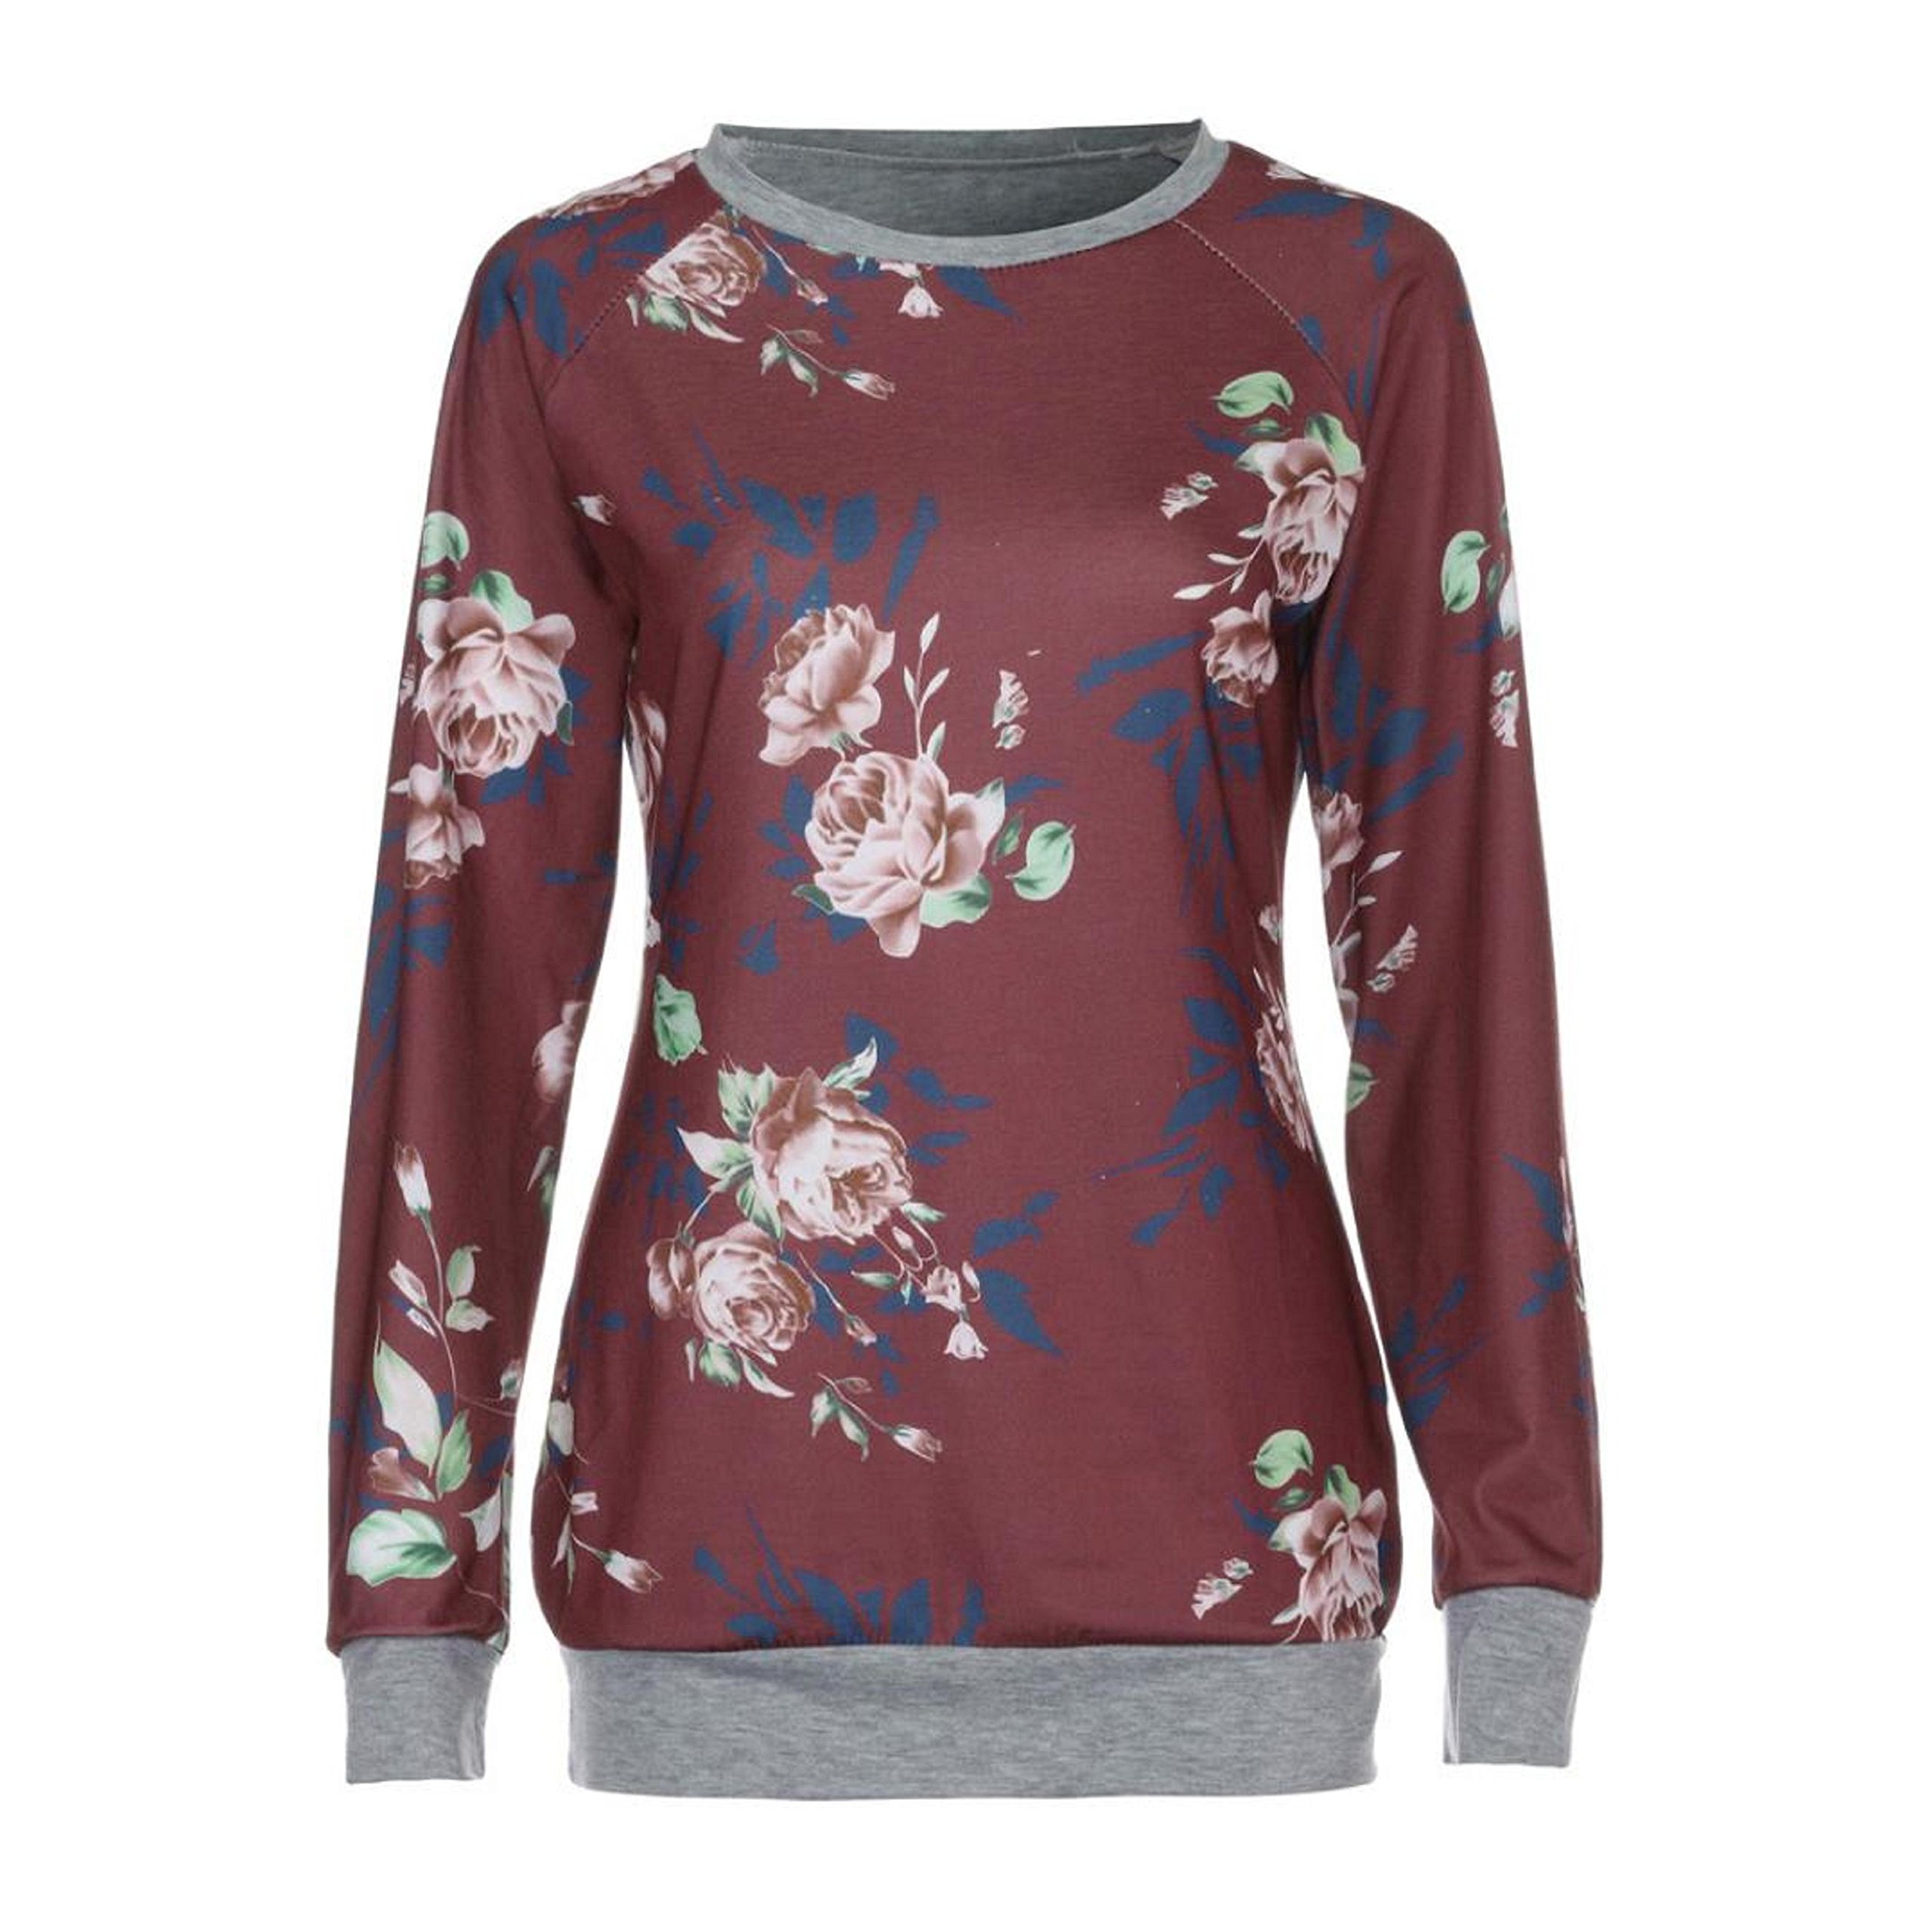 PPBUY Women Autumn Floral Printing Long Sleeve Shirt Casual Top Blouse (XL, Red) by PPBUY (Image #4)